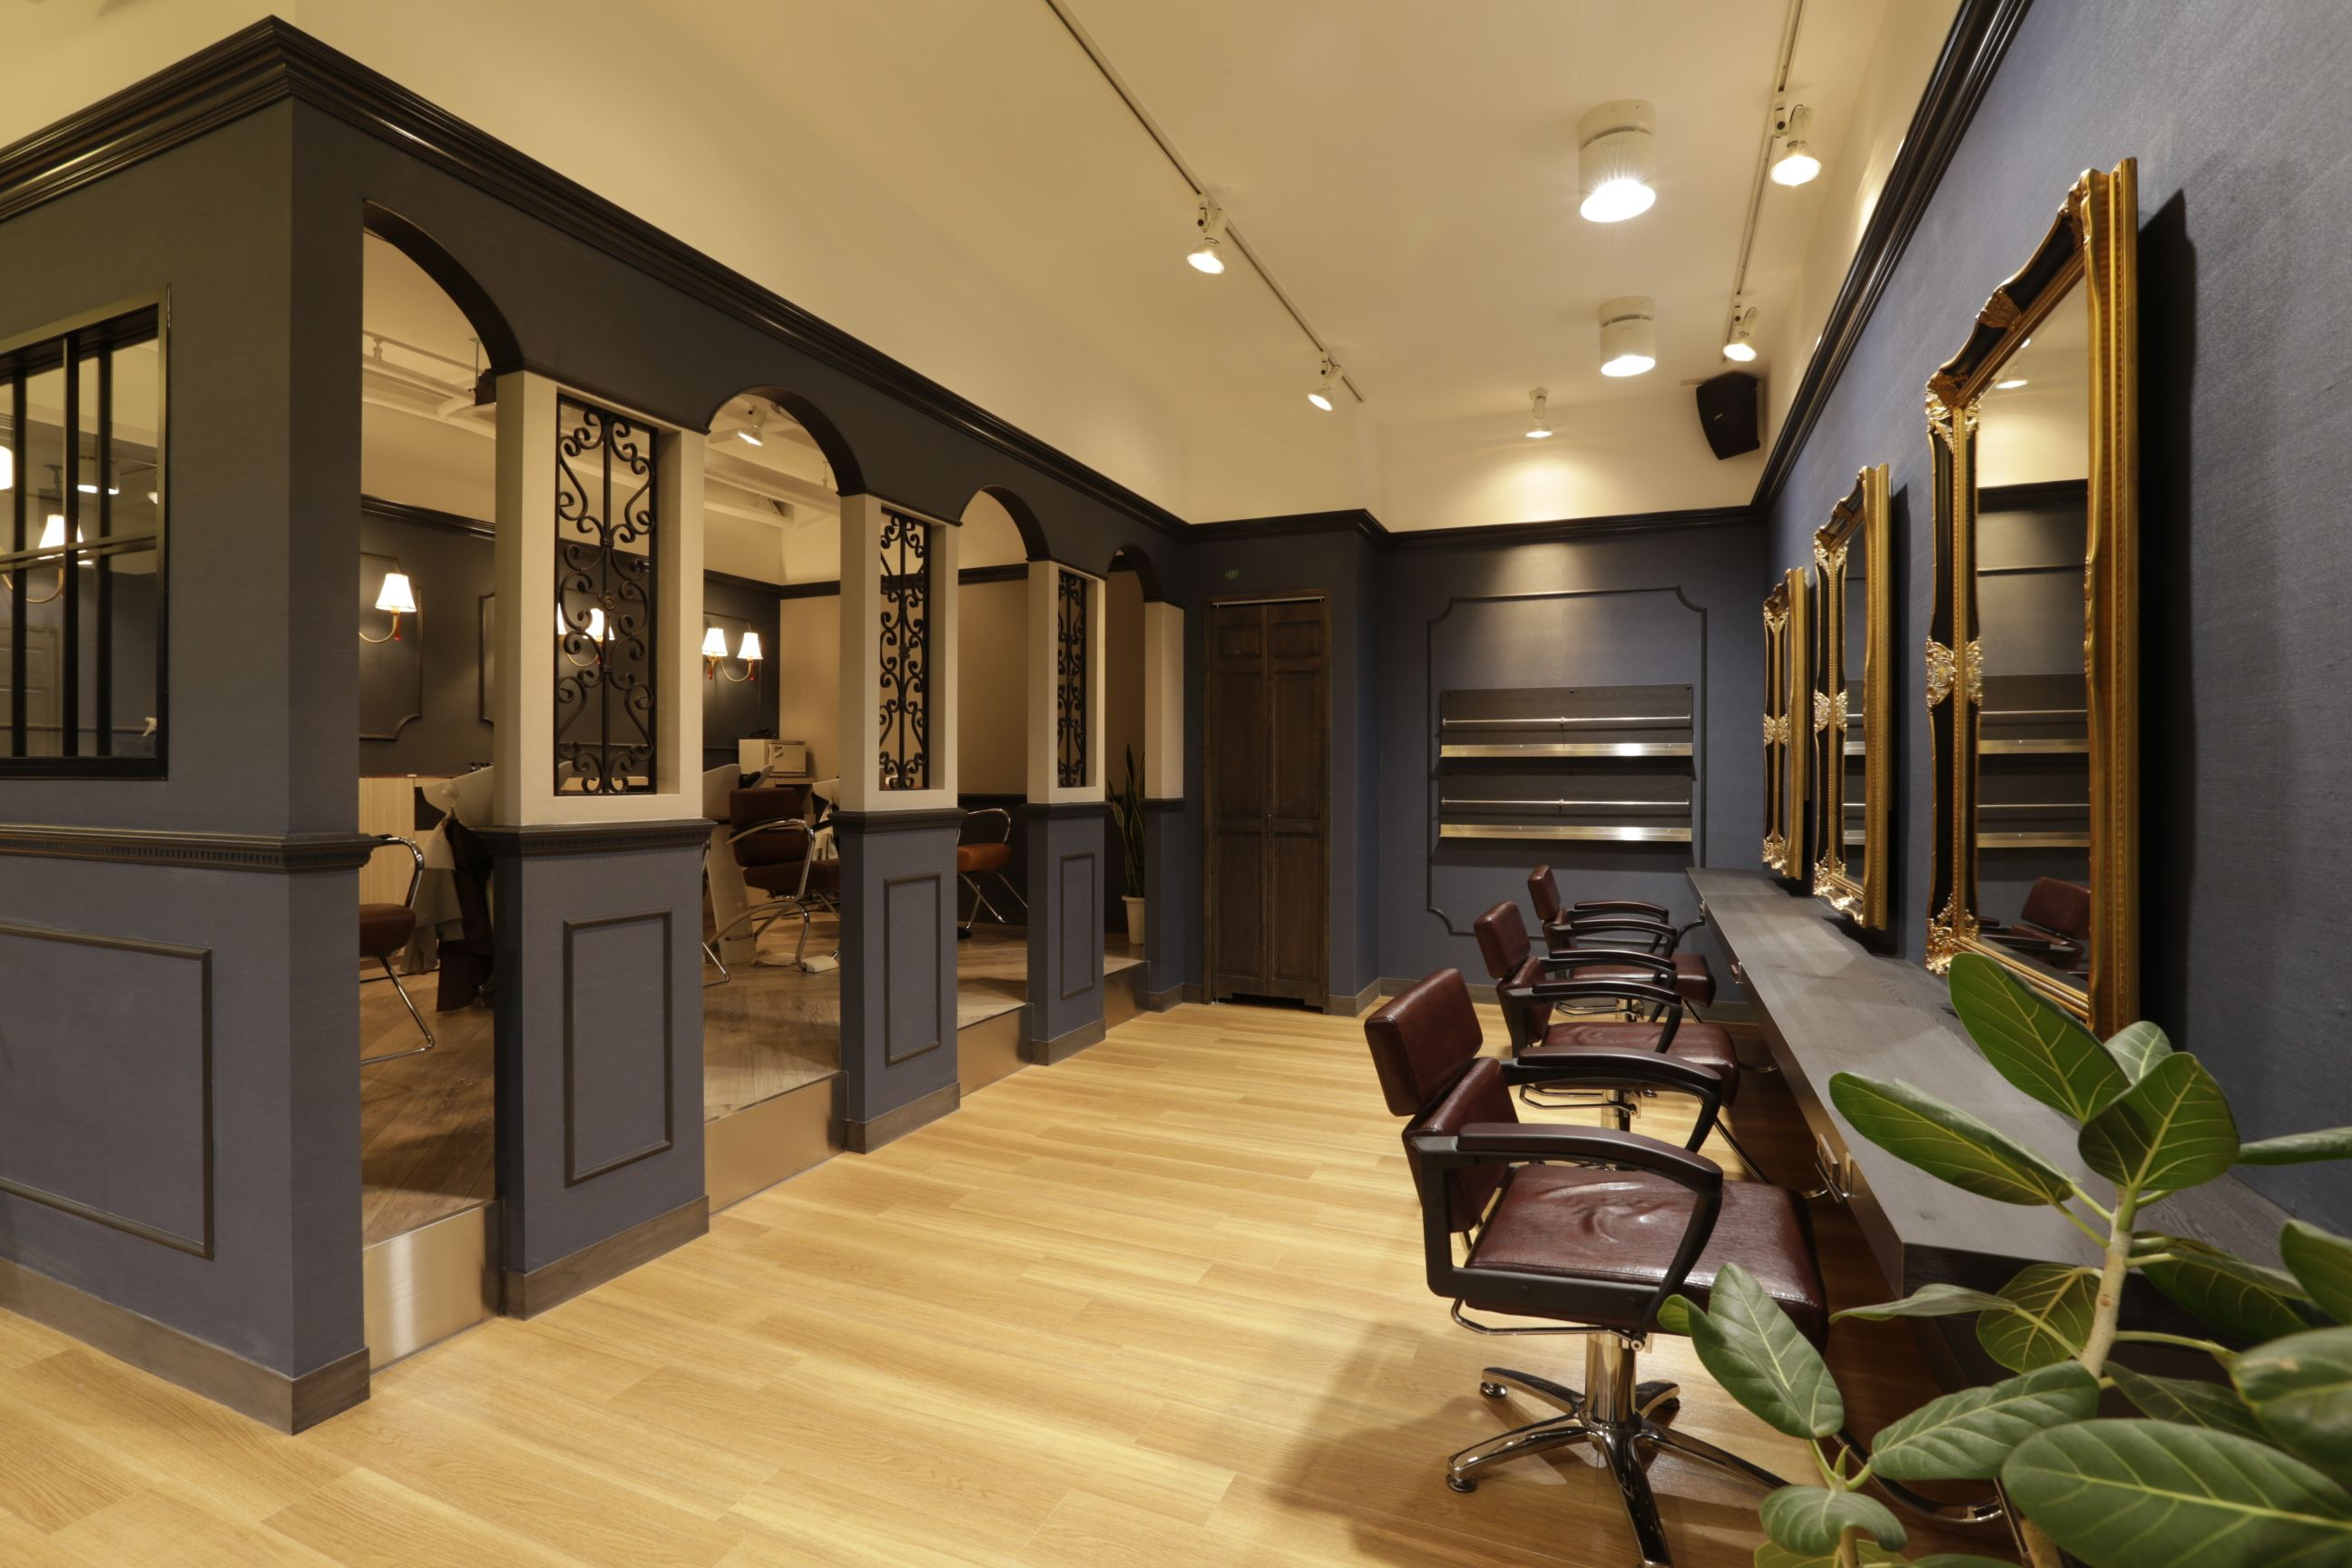 salon salon business japan design salon style hair salons salon ideas